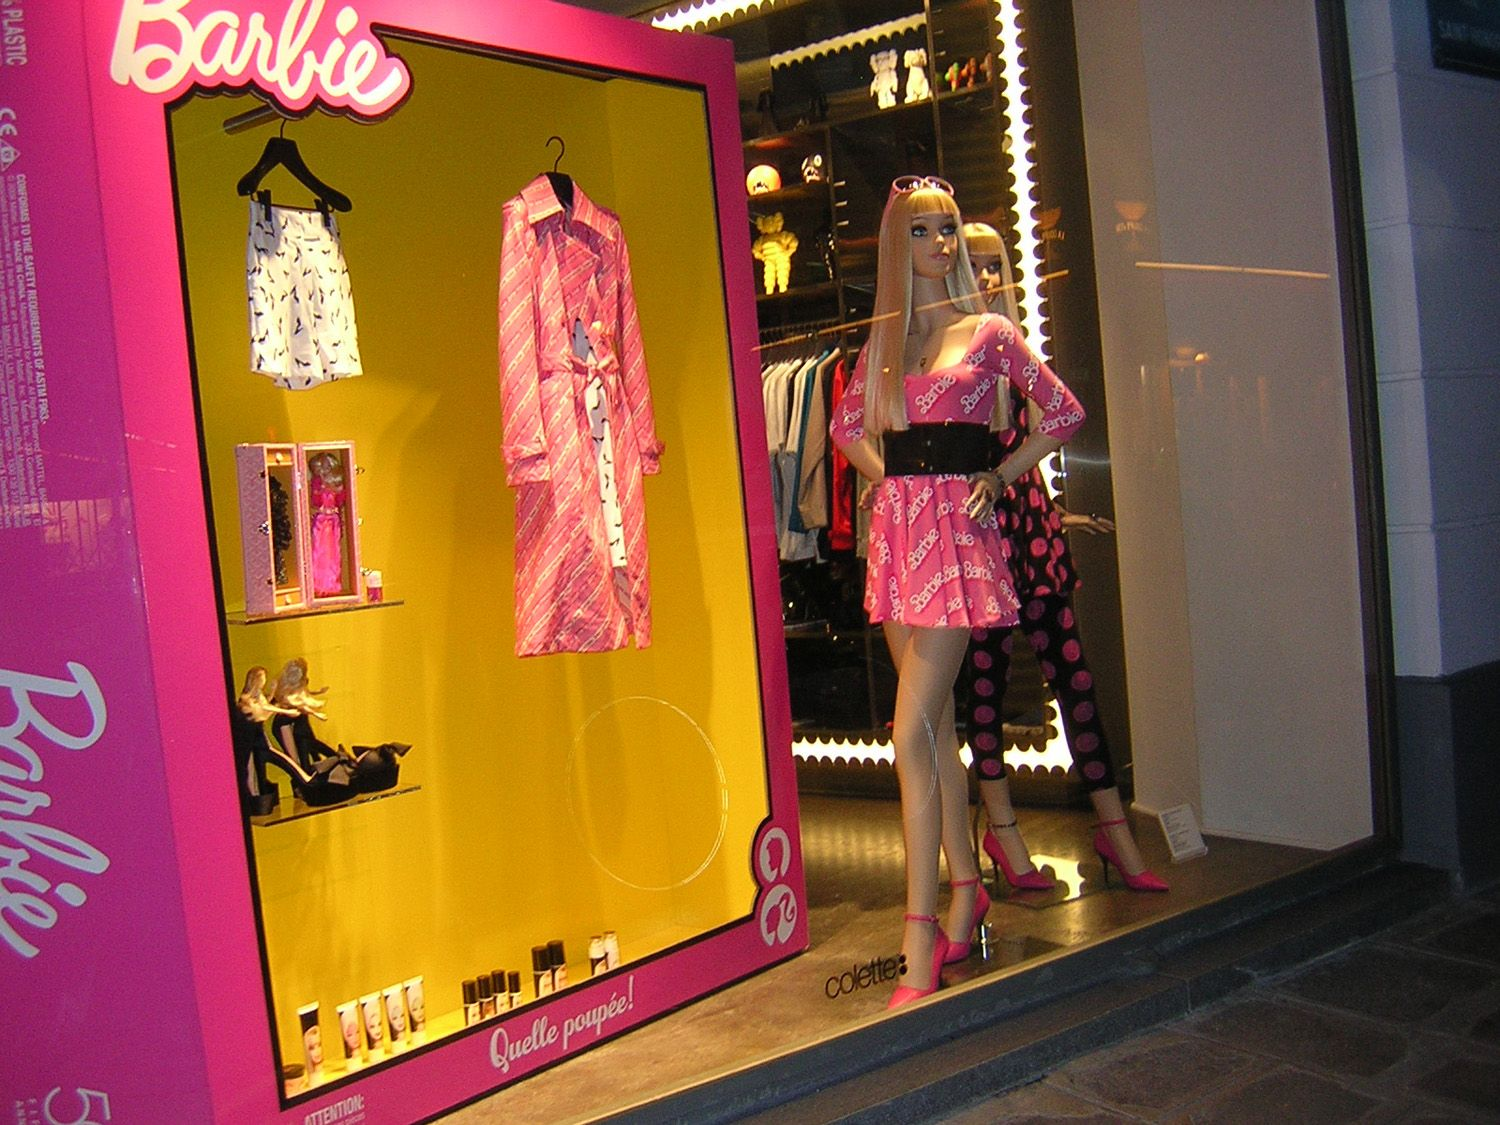 Barbie at Colette, Paris.  Courtesy of www.fashionwindows.net